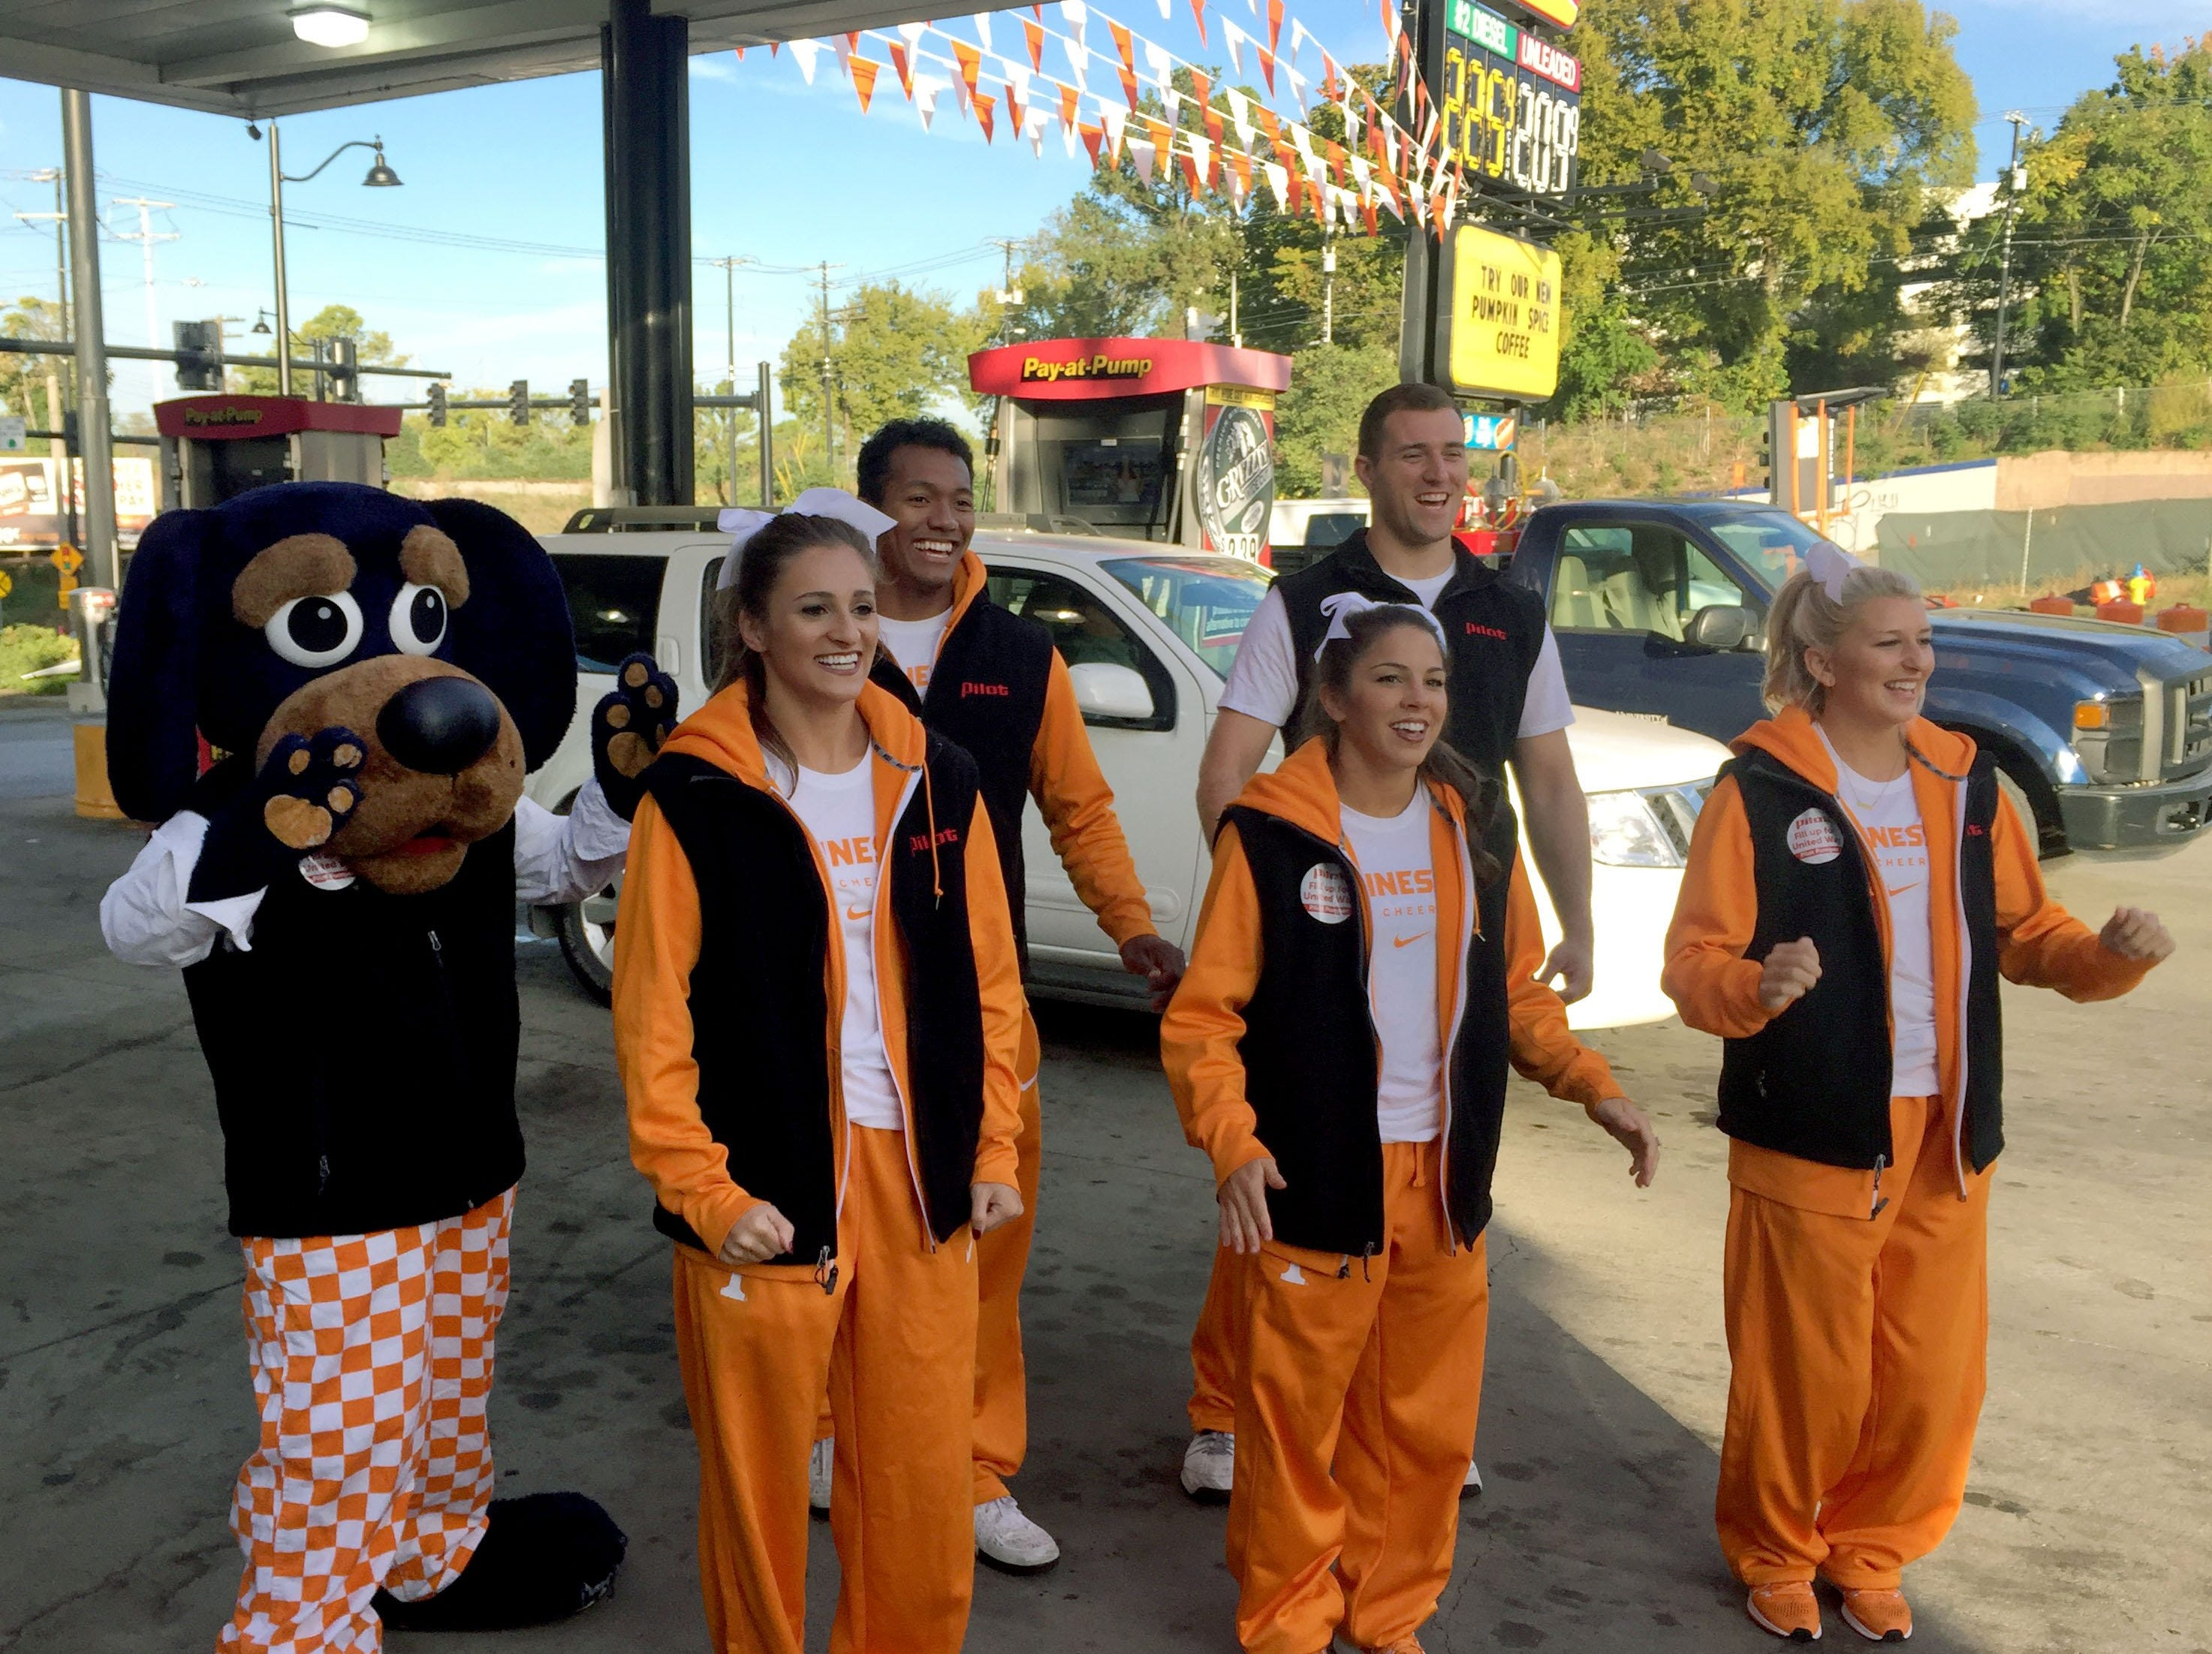 The University of Tennessee Spirit Team was at the Cumberland Ave location as celebrity pumpers to raise money for United Way Tuesday, Oct. 11, 2016.